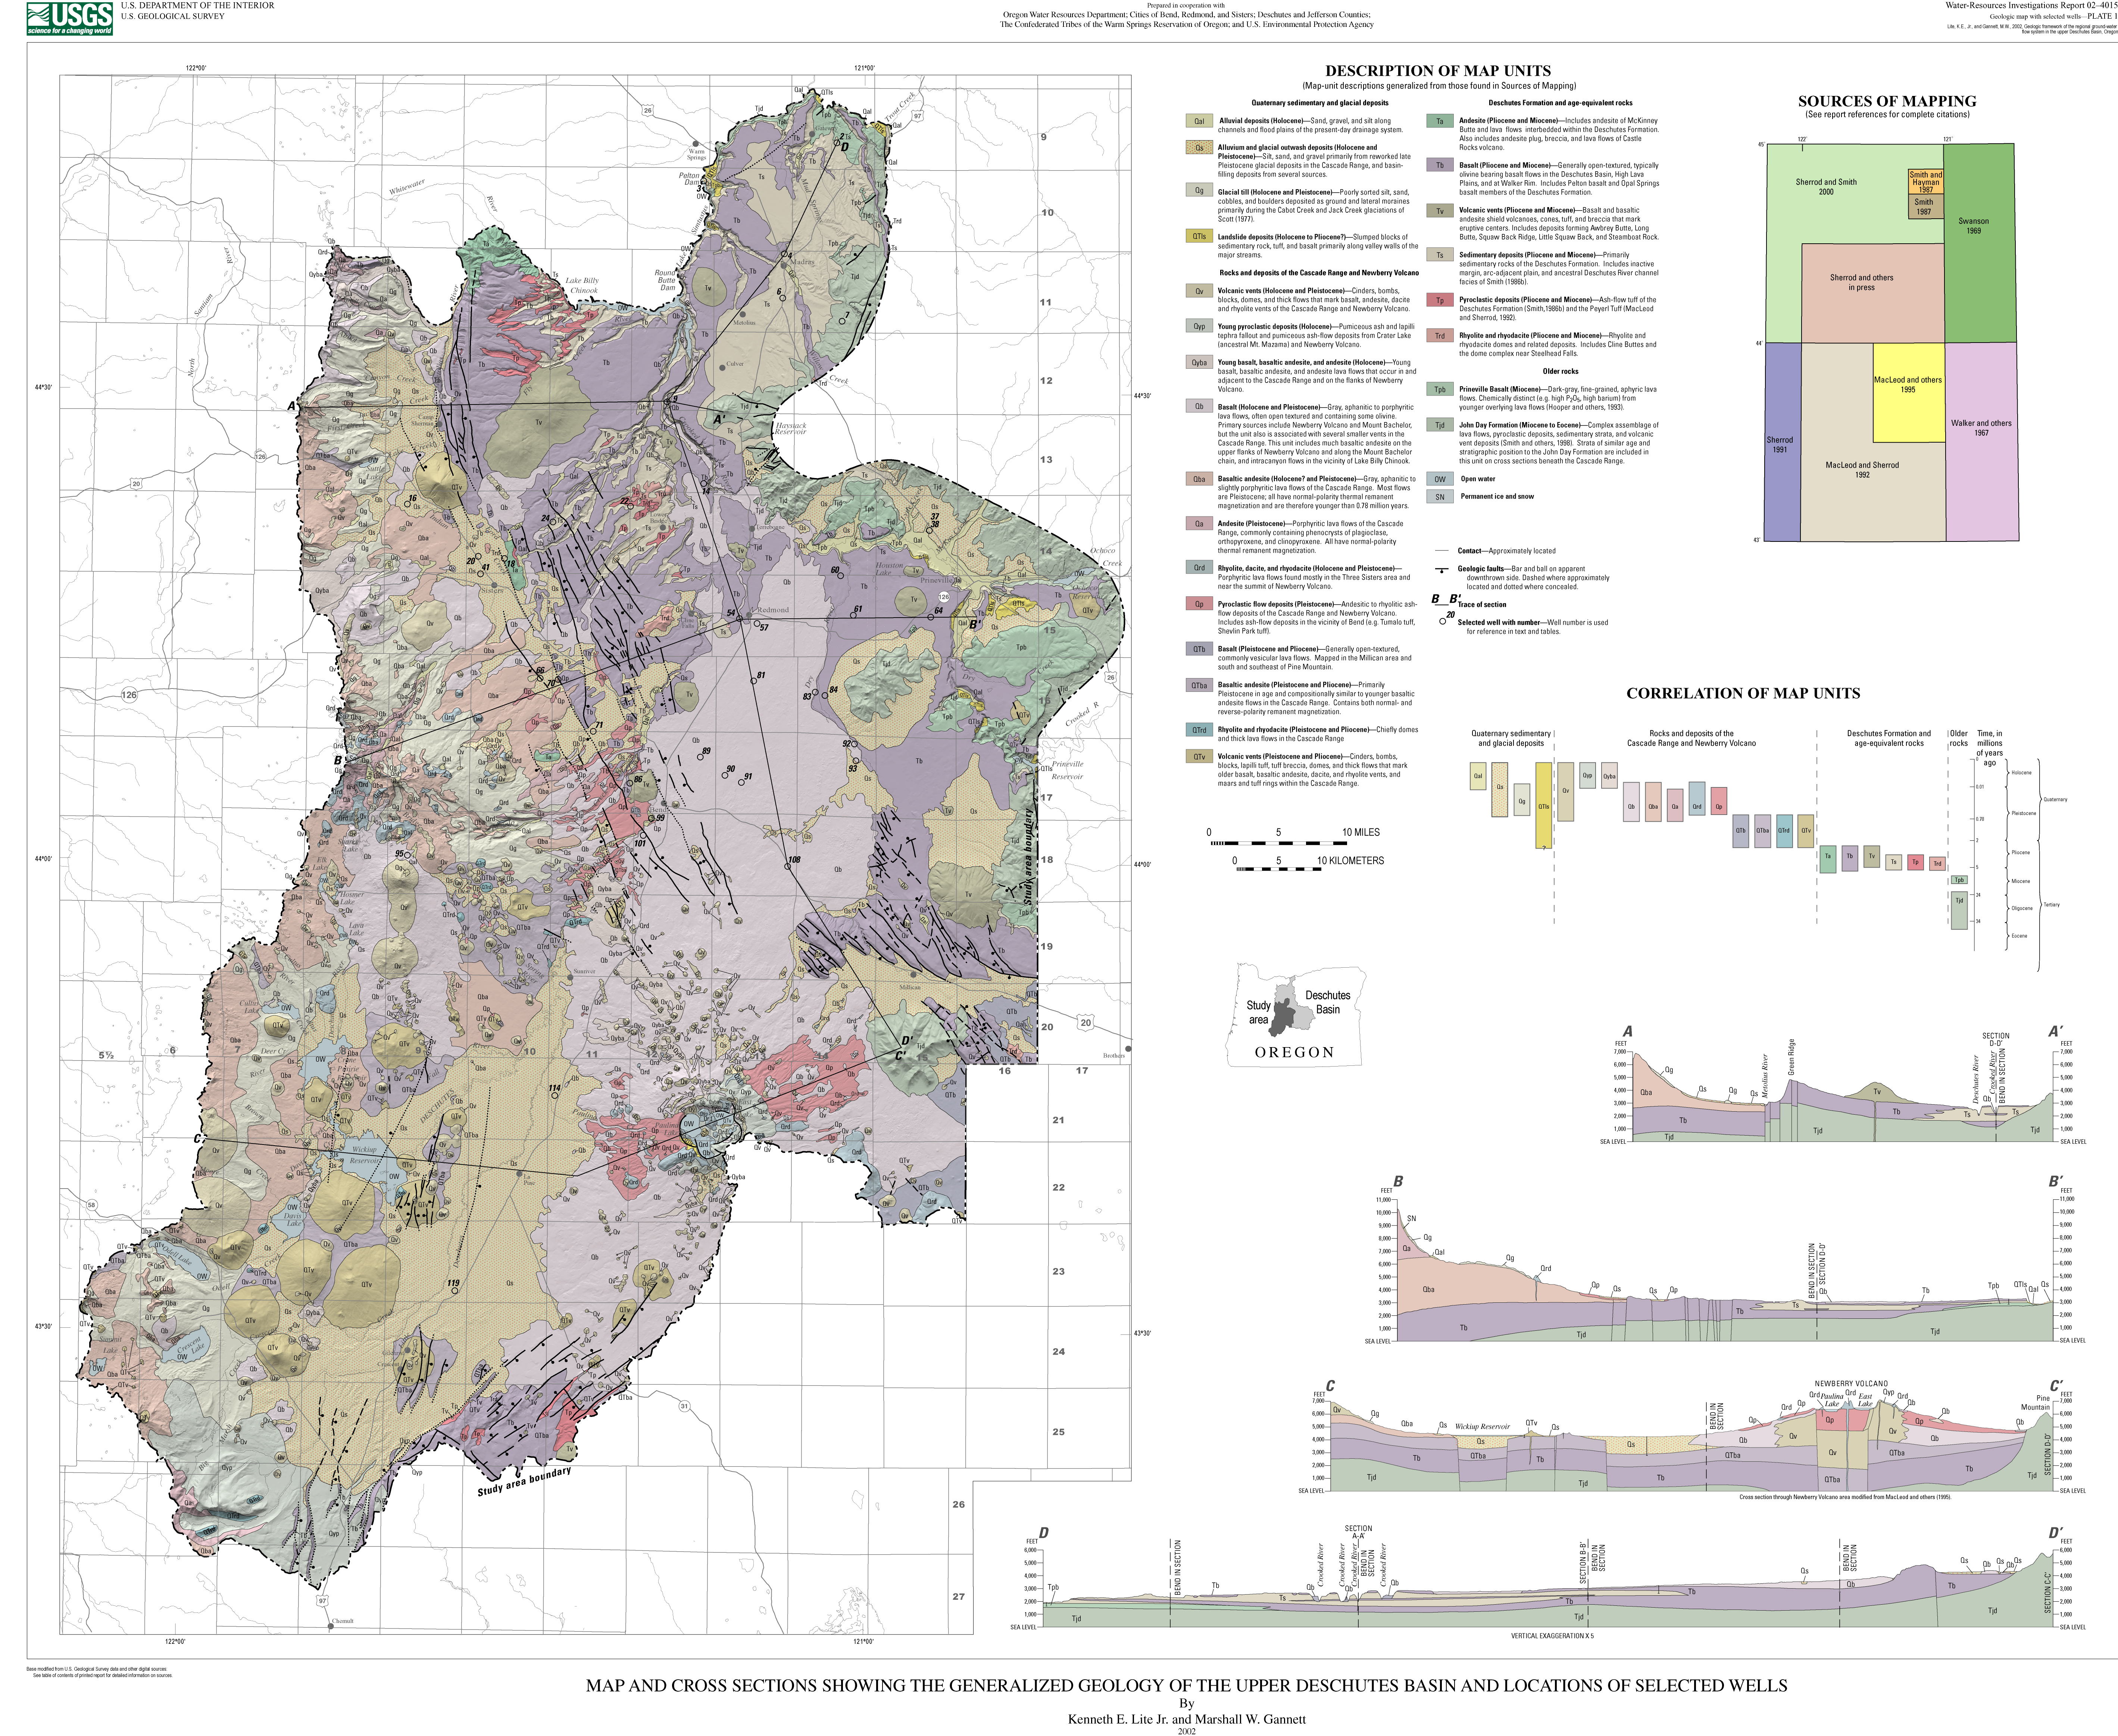 Geologic framework of the regional ground-water flow system in the